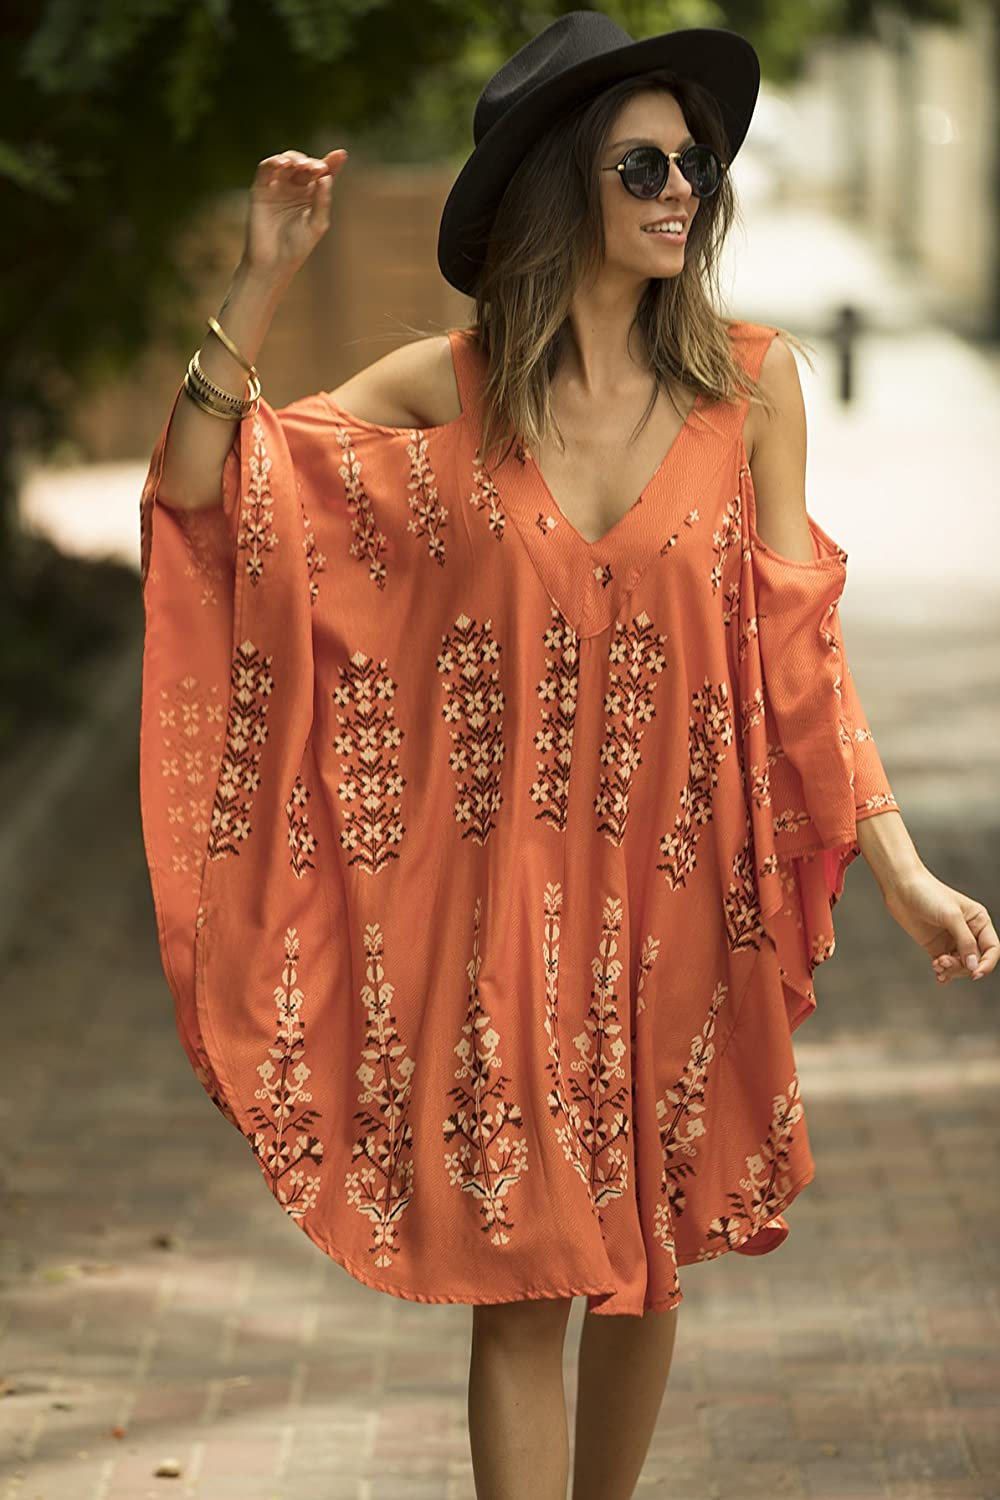 Oversized Moroccan Caftan, Short Orange Kaftan, Open Shoulder, Hippie Ethnic Women Holiday Beach Dress, Boho Convertible Dress